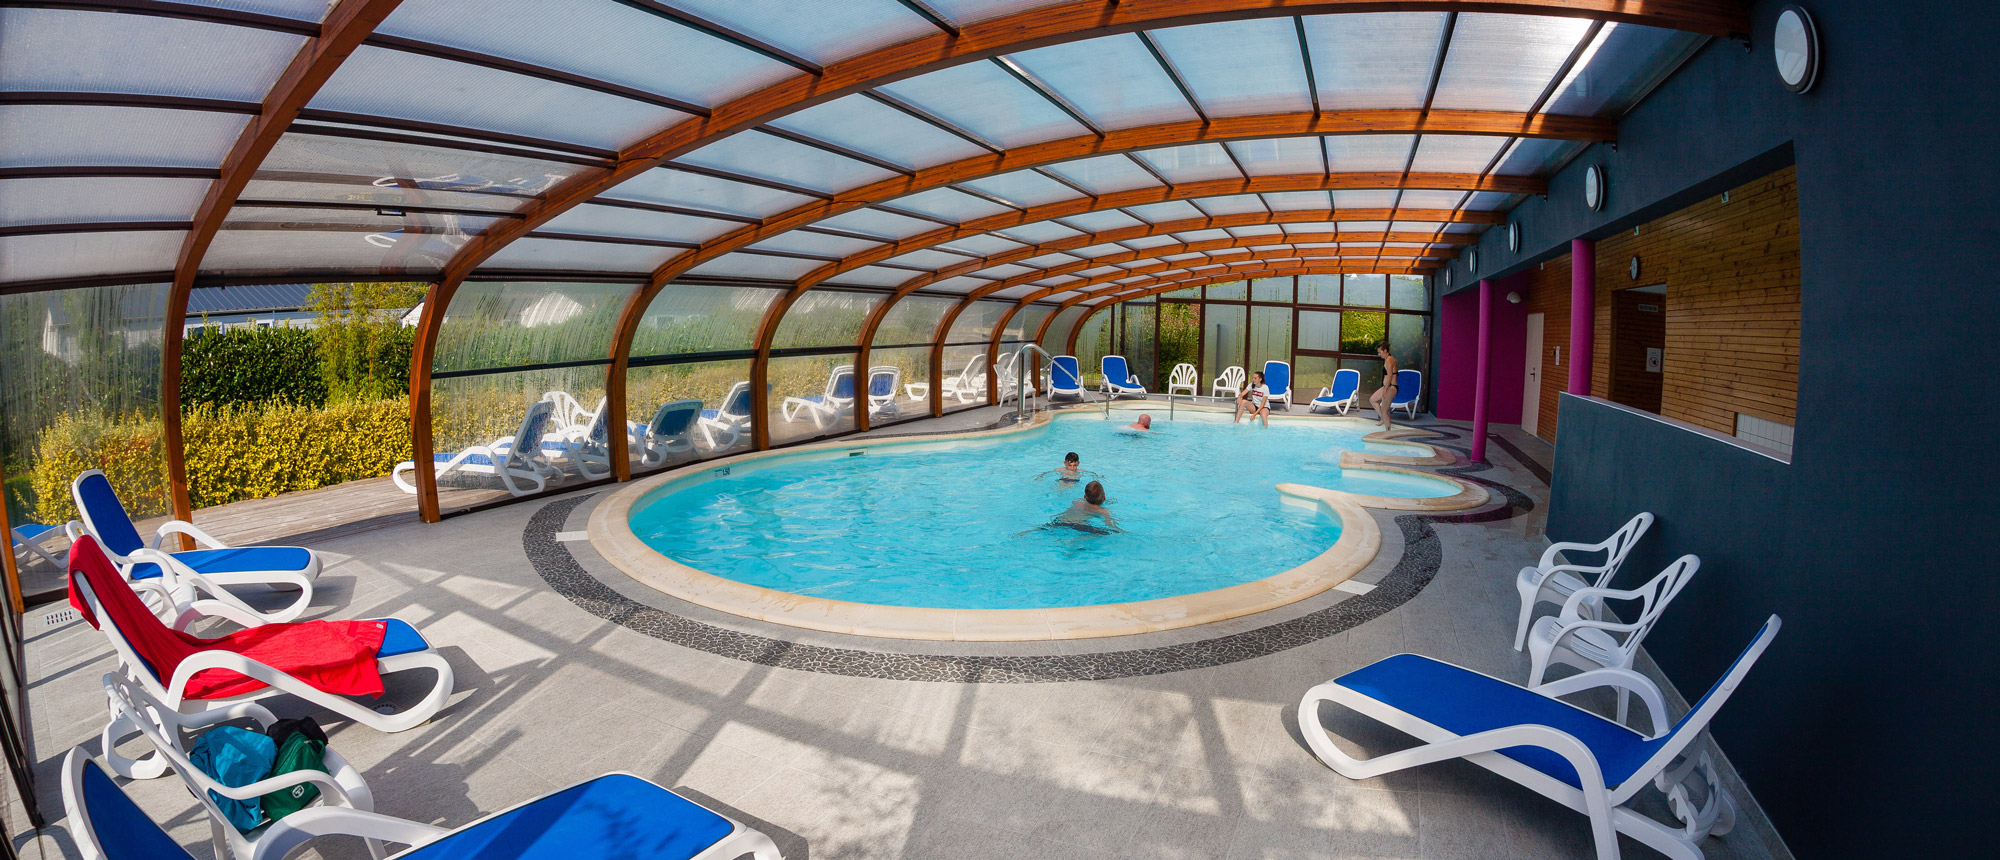 Campsite With Heated Pools In The Finistère For The Whole ... destiné Piscine Saint Pol Sur Mer